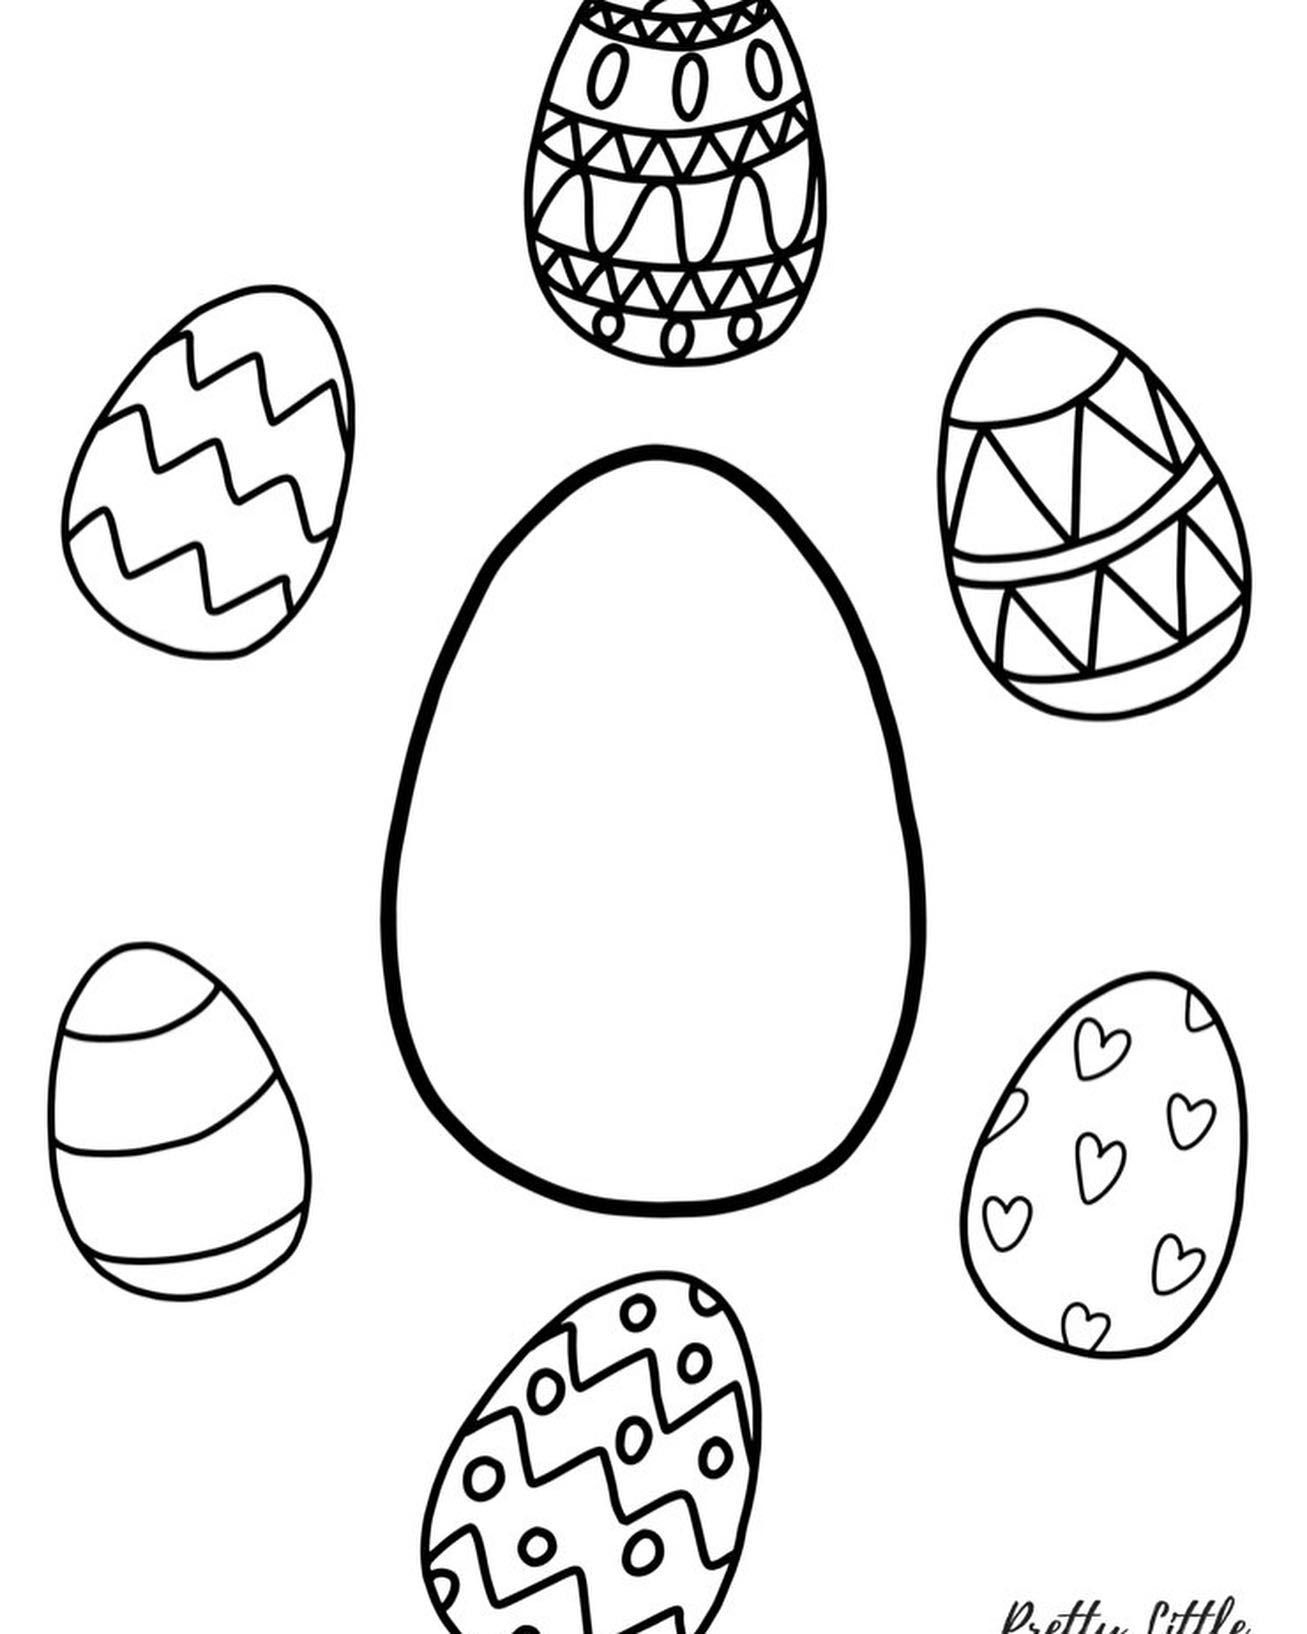 Have You Seen The Latest Free Colouring Pages I Ve Uploaded A Design Your Own Easter Egg With In 2020 Bunny Coloring Pages Free Coloring Pages Unicorn Coloring Pages